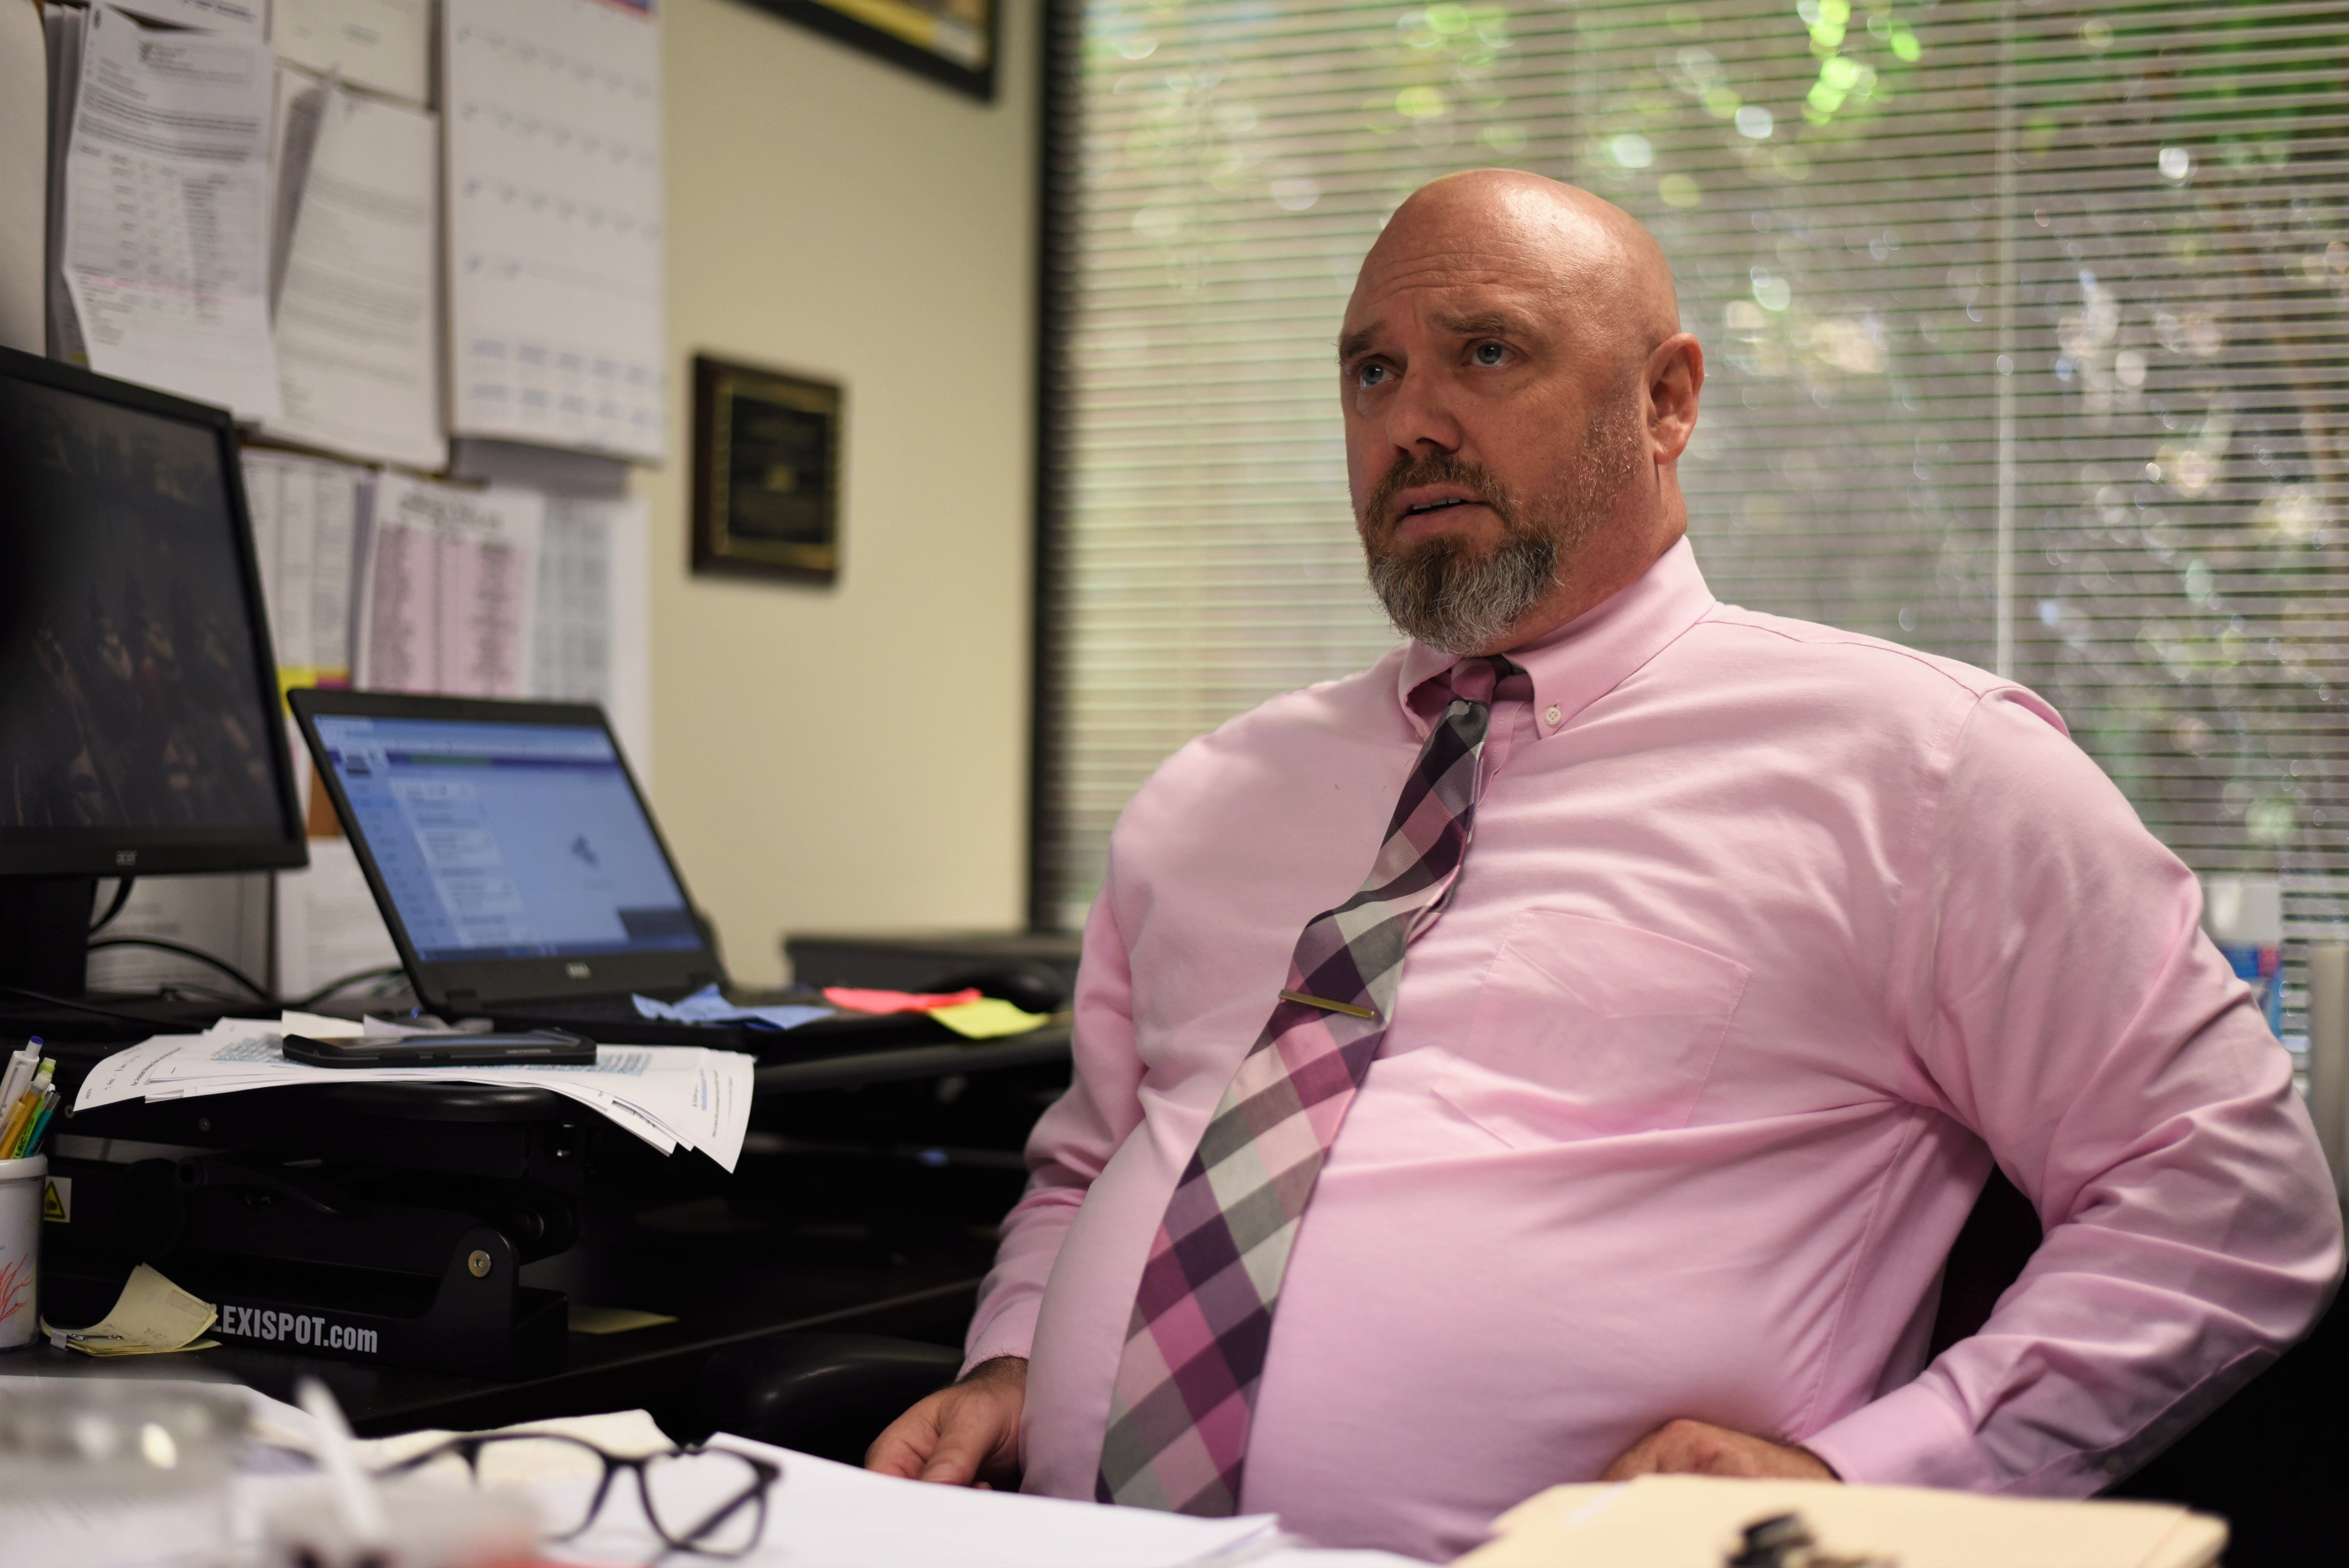 Frank Prevratil, Amanda Rivenburg's boss at Living Resources, talks about how her death has affected both himself and the company as a whole on Tuesday, Sept. 17, 2019.